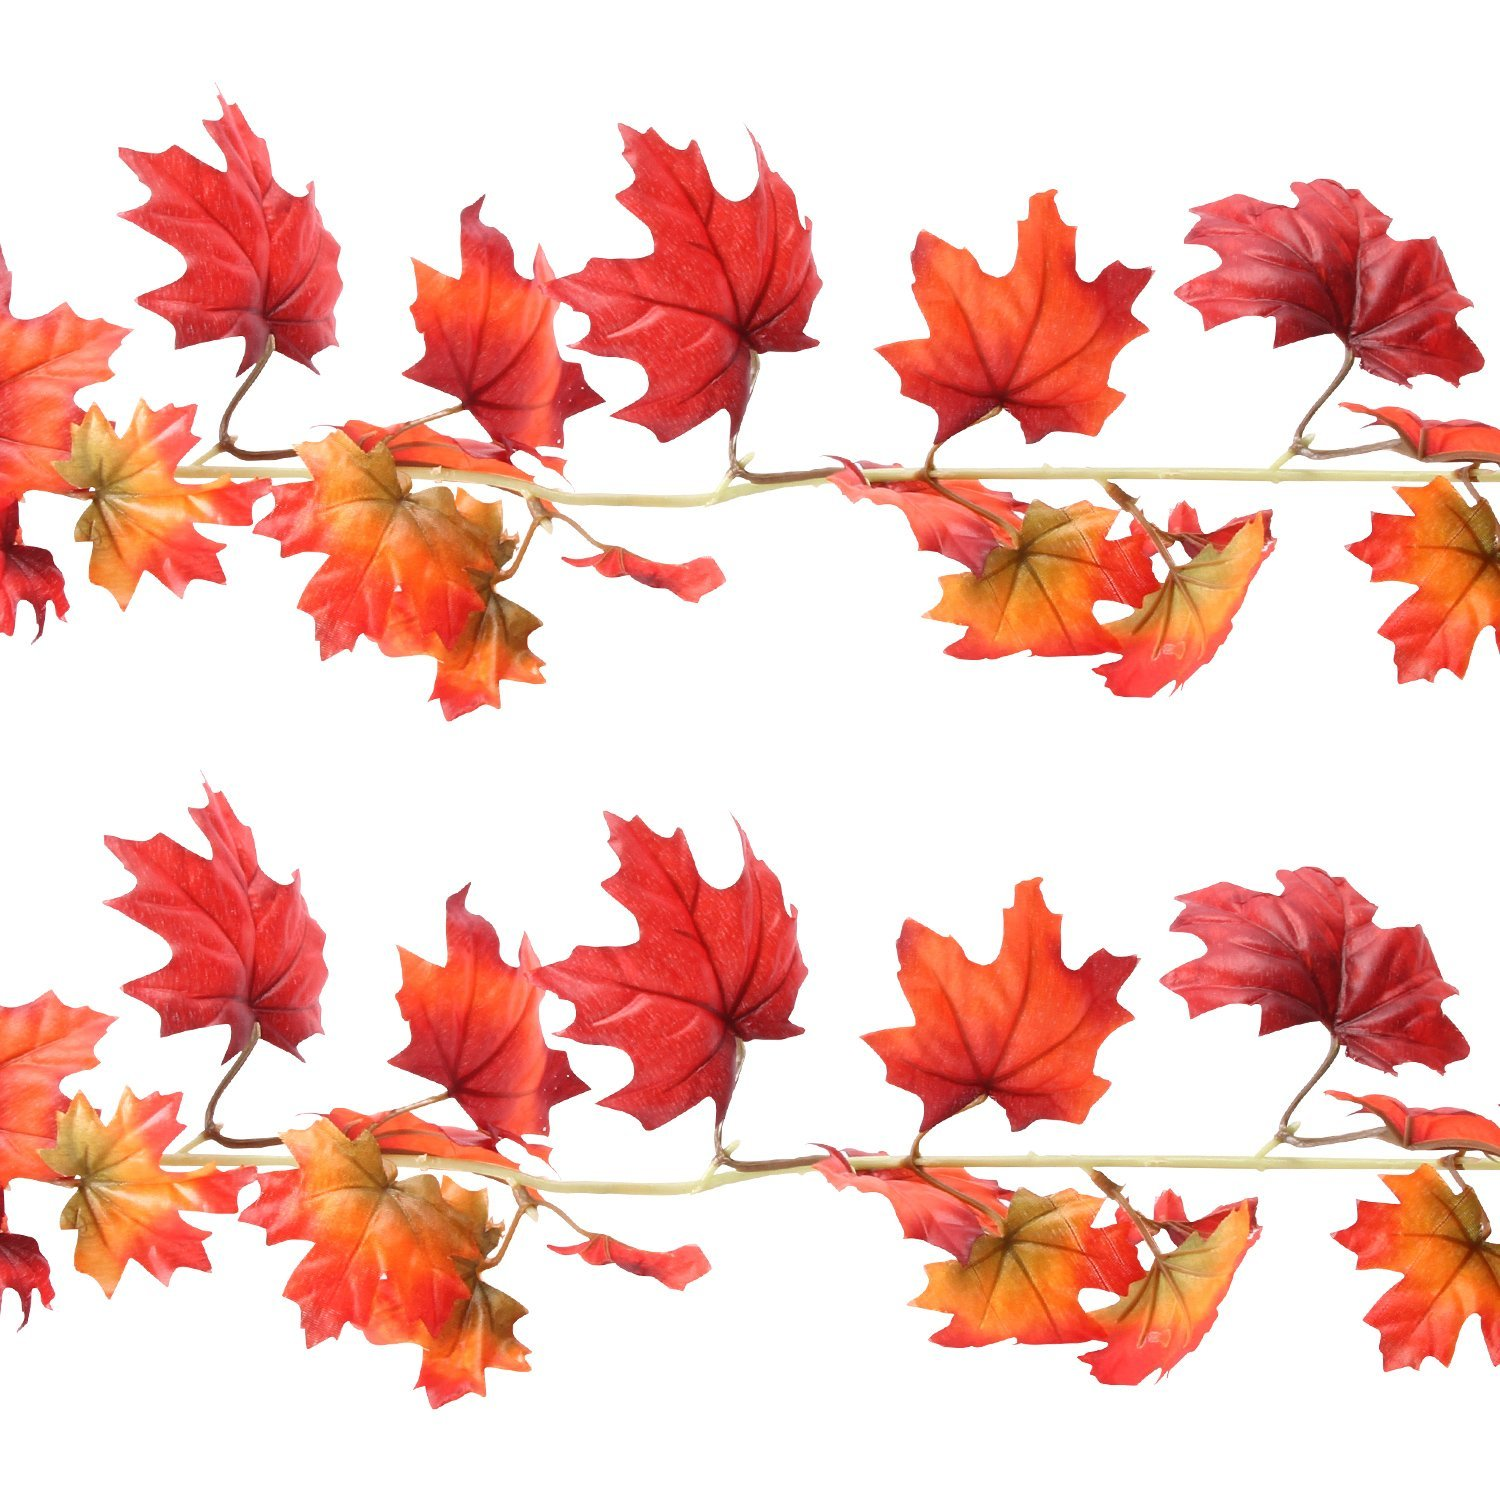 Sunshane 5.9 Feet Fall Garland Artificial Maple Leaf Garland Autumn Thanksgiving Party Room Decoration (2 Pack)